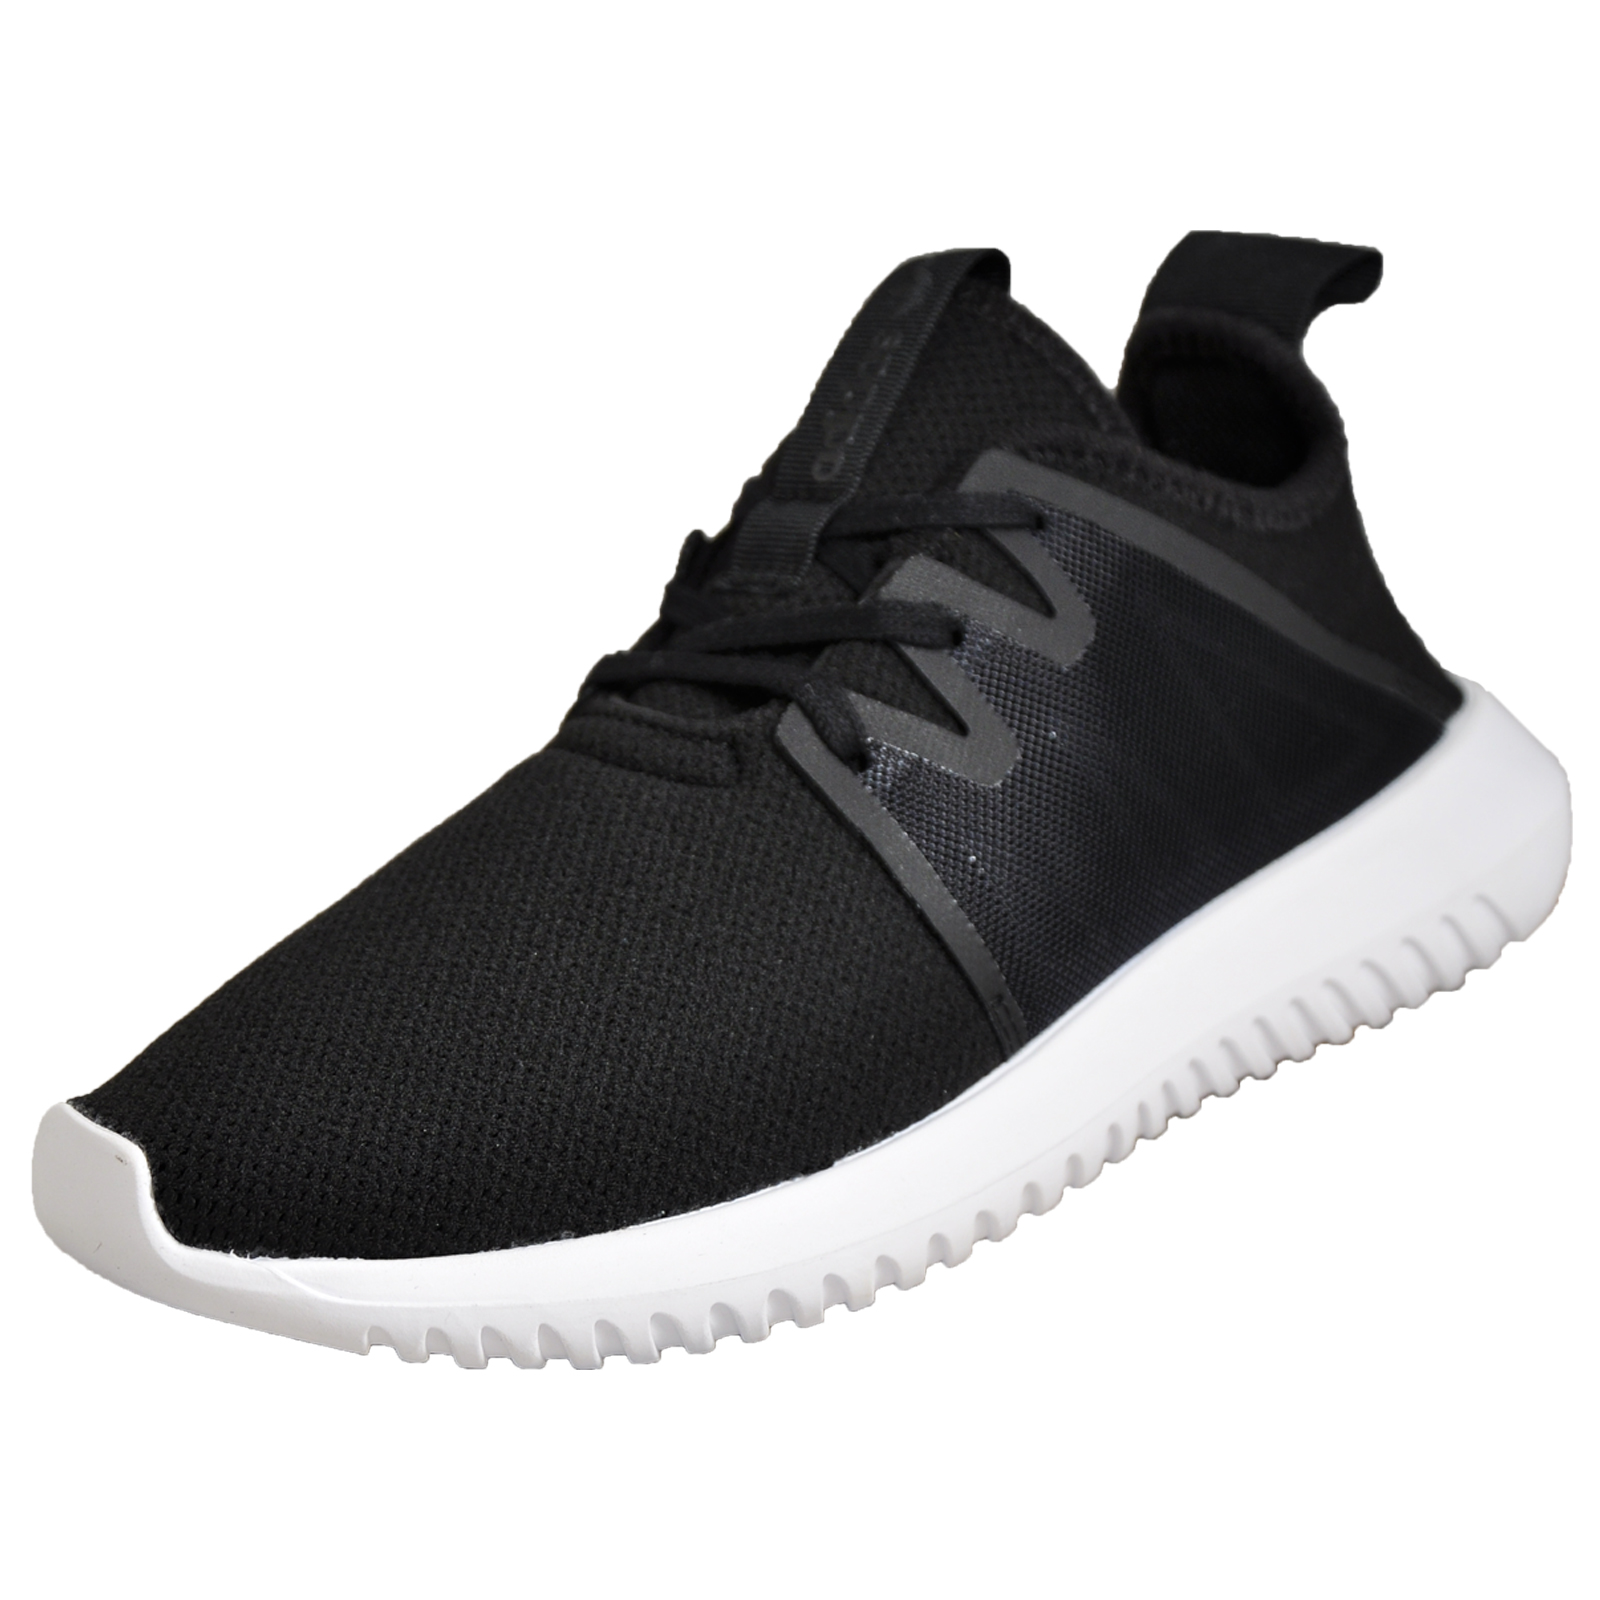 ac7701ea139 Details about Adidas Originals Tubular Viral 2 Women s Ladies Running Shoes  Gym Trainers Black